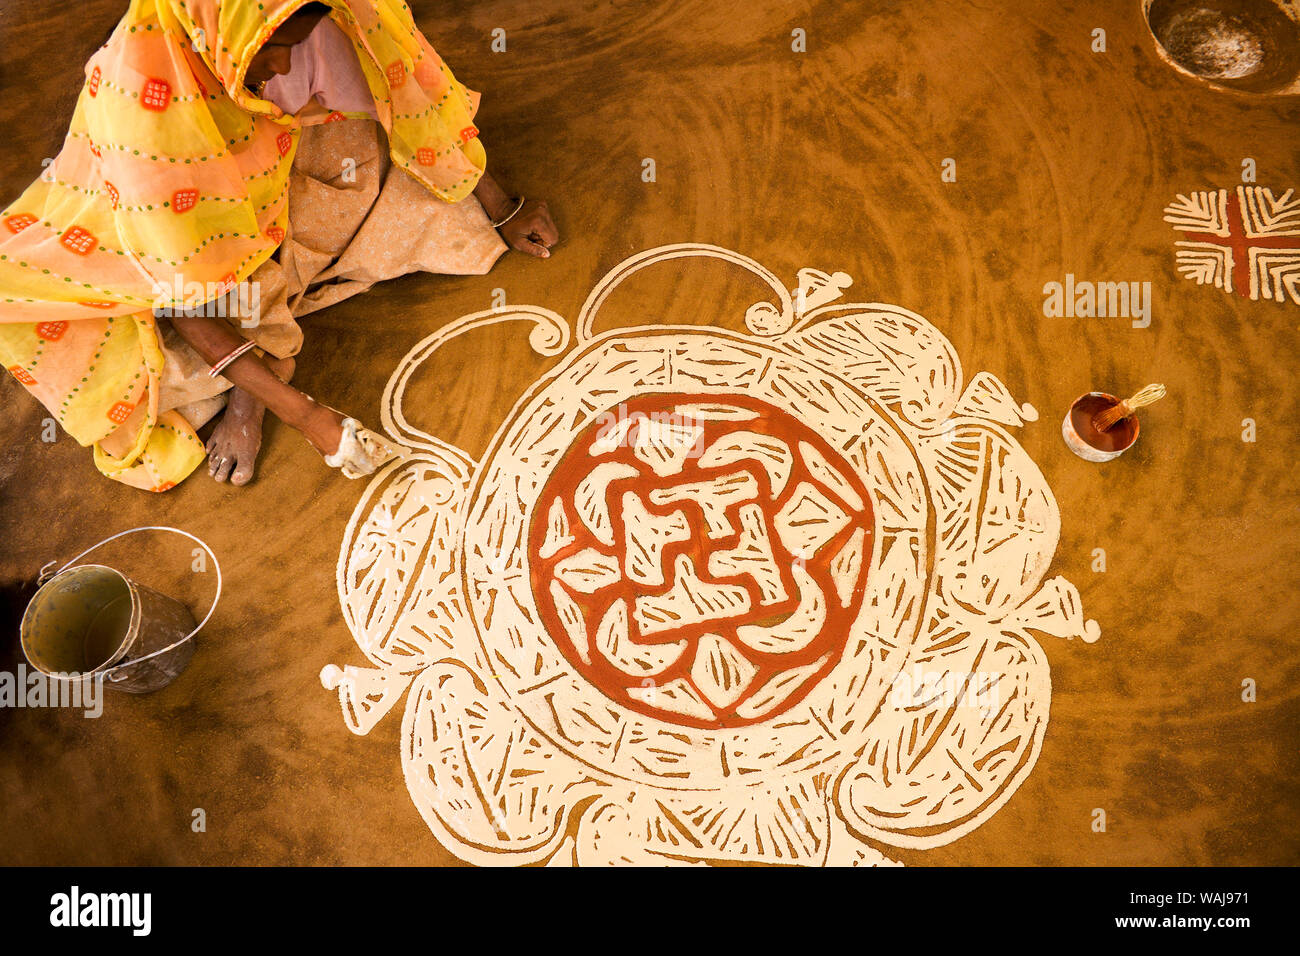 Diwali Rangoli Coloring Pages | Diwali Rangoli Coloring Pages ... | 956x1300